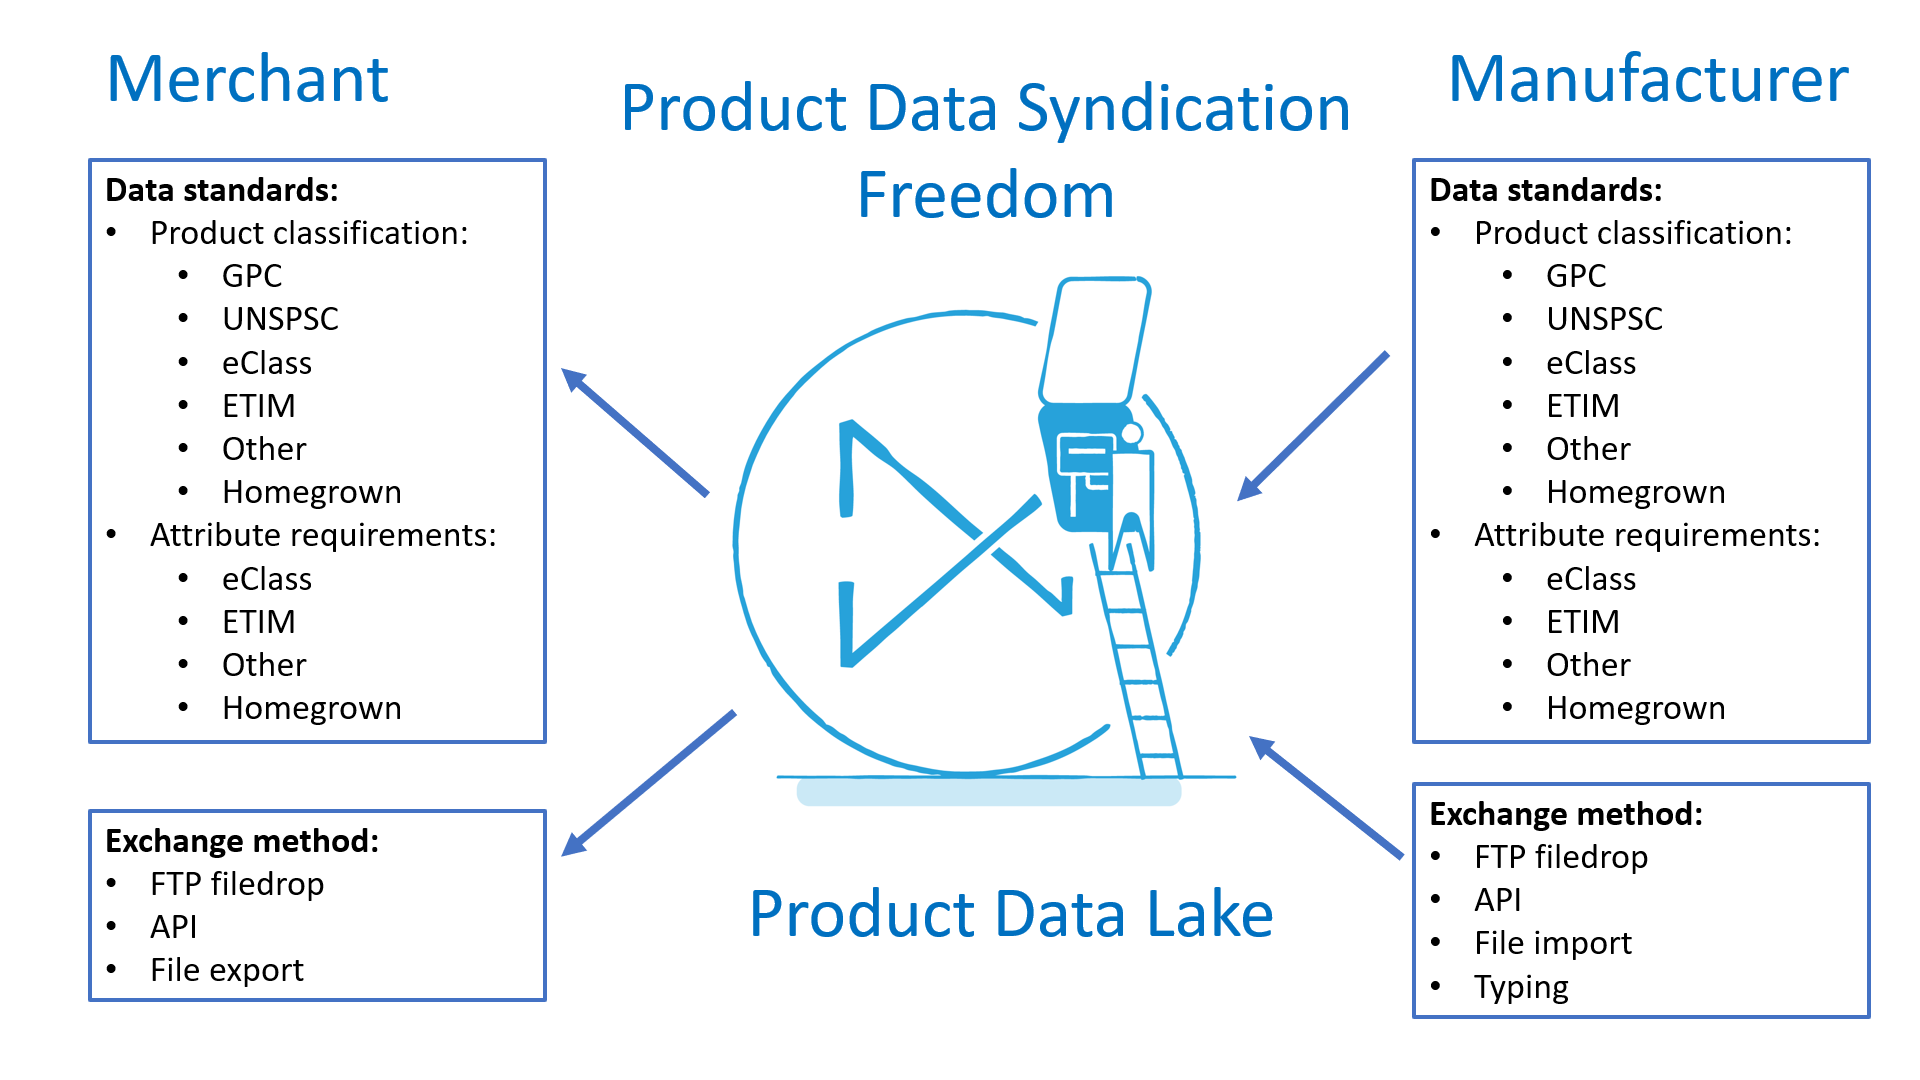 Product Data Lake - Let product data flow easily between trading